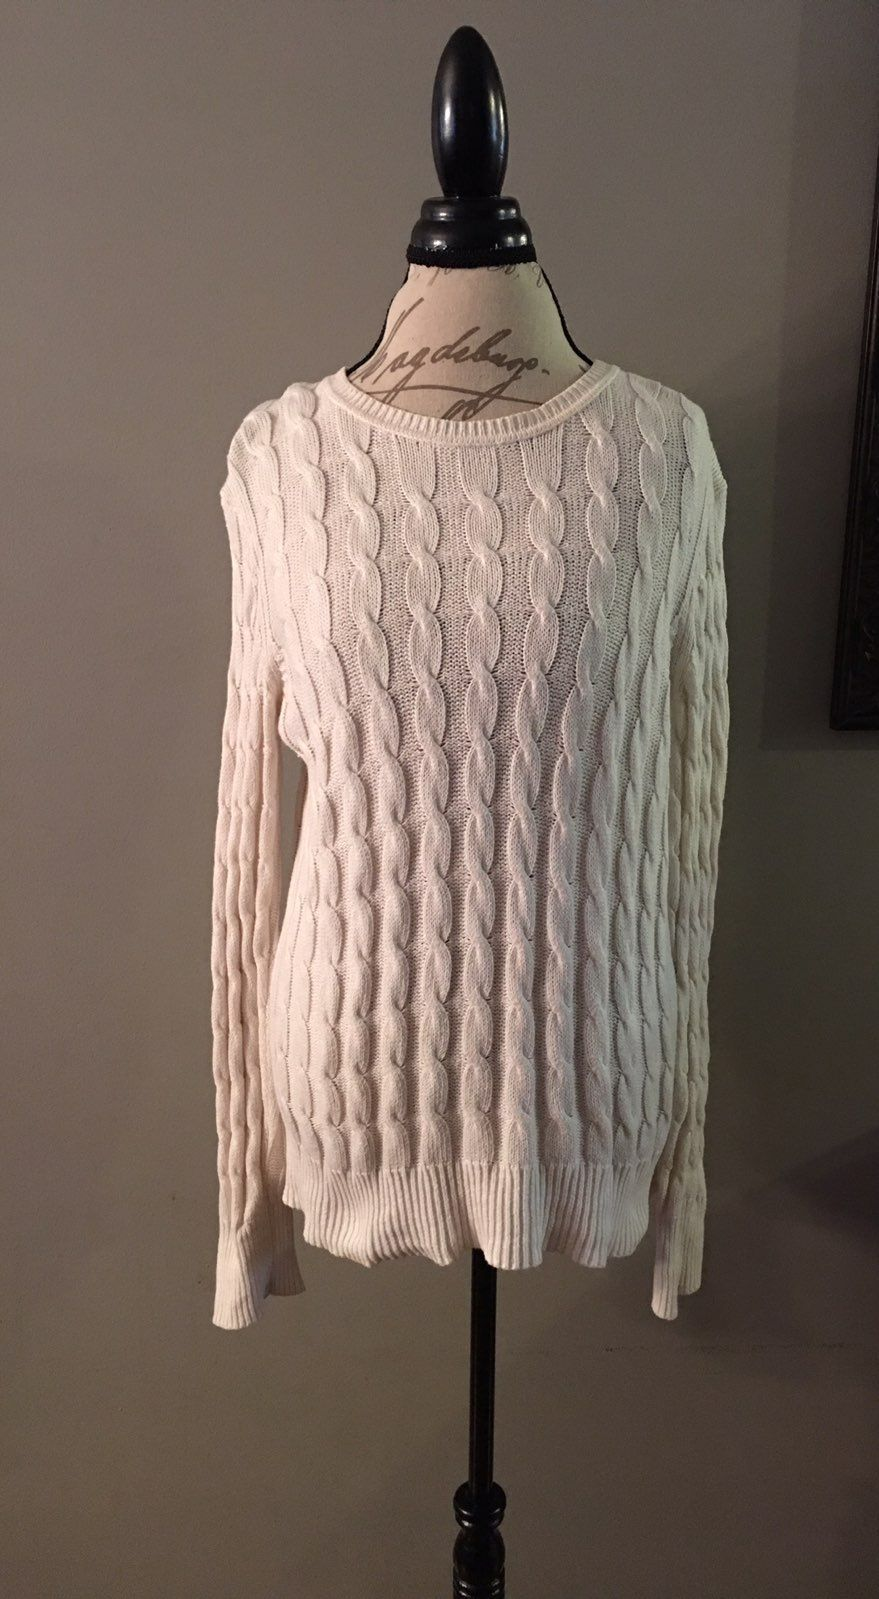 Gap Cable Knit Sweater - Mercari: BUY & SELL THINGS YOU LOVE